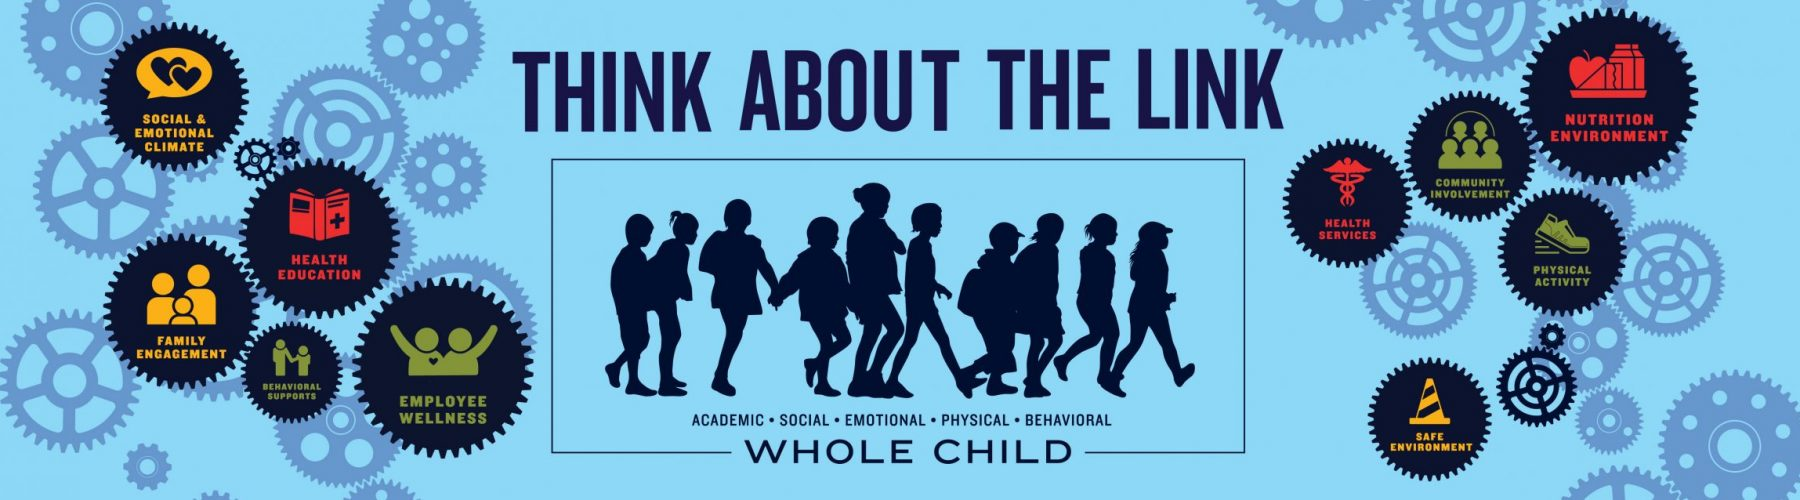 Think about the Link academic social emotional physical behavioral shows gears with 10 domains of whole school, whole community, whole child model in each gear with blue children walking together